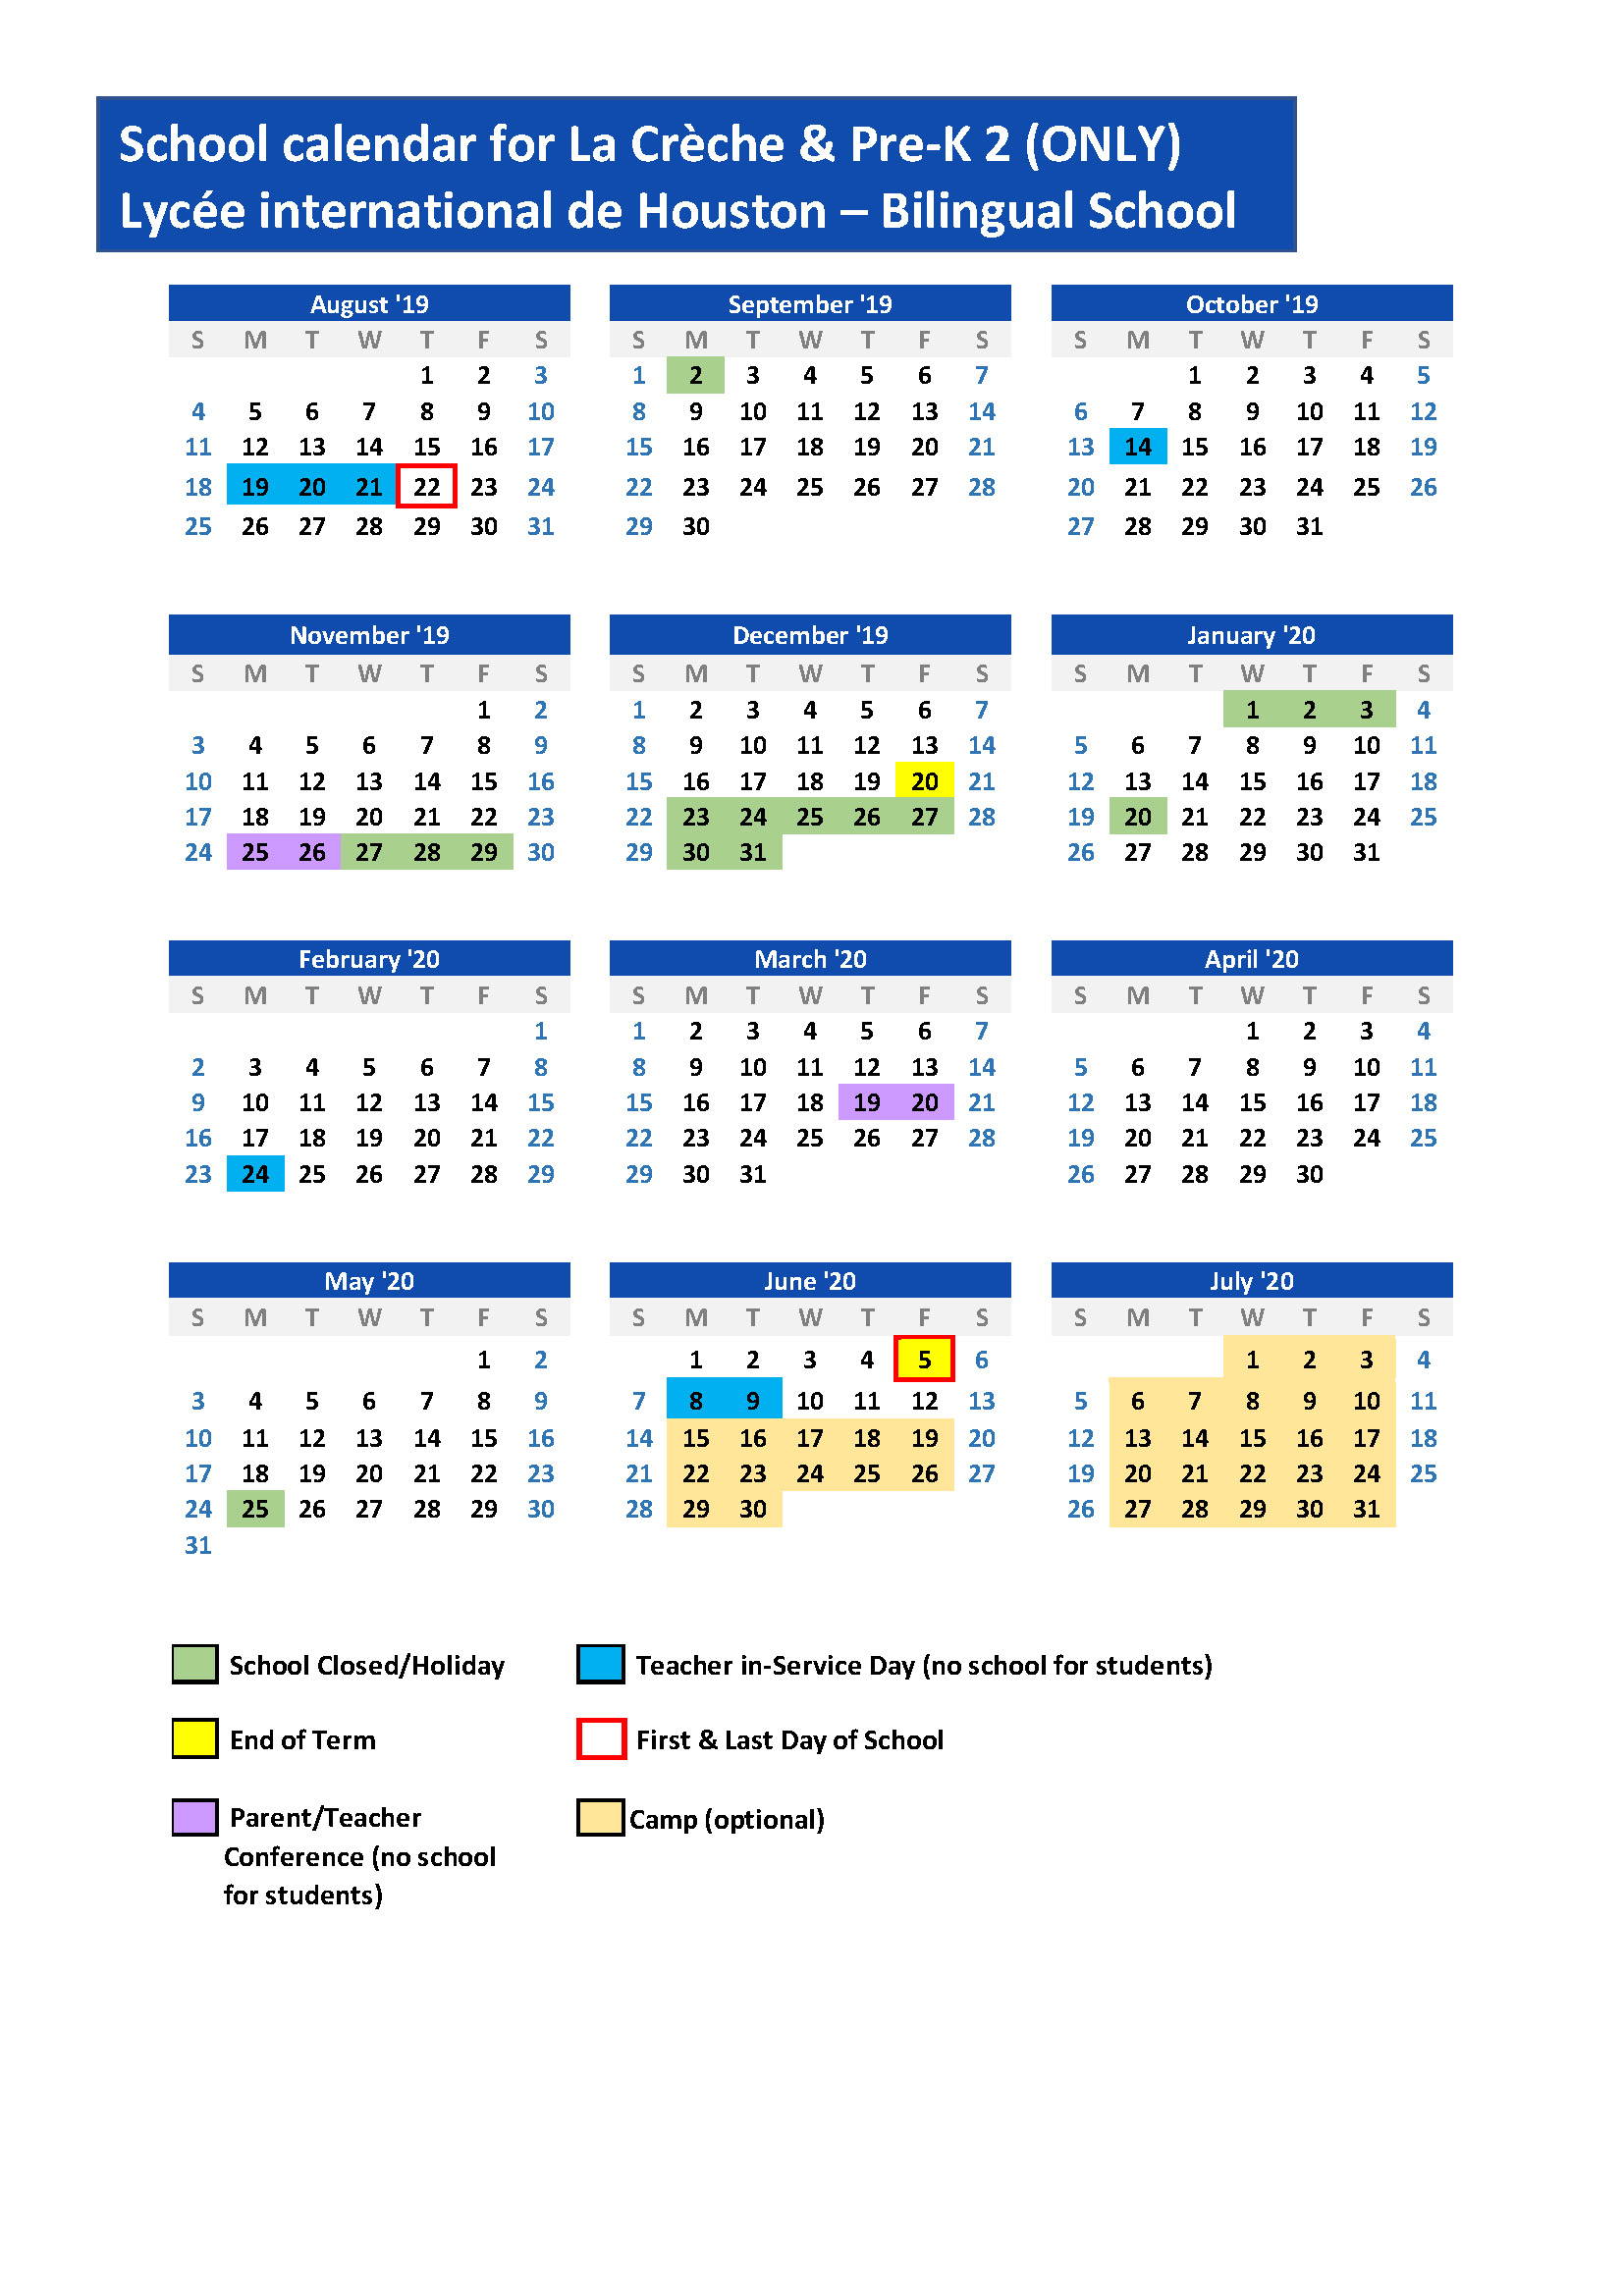 Calendario Estate 2020.Calendar Lycee International De Houston